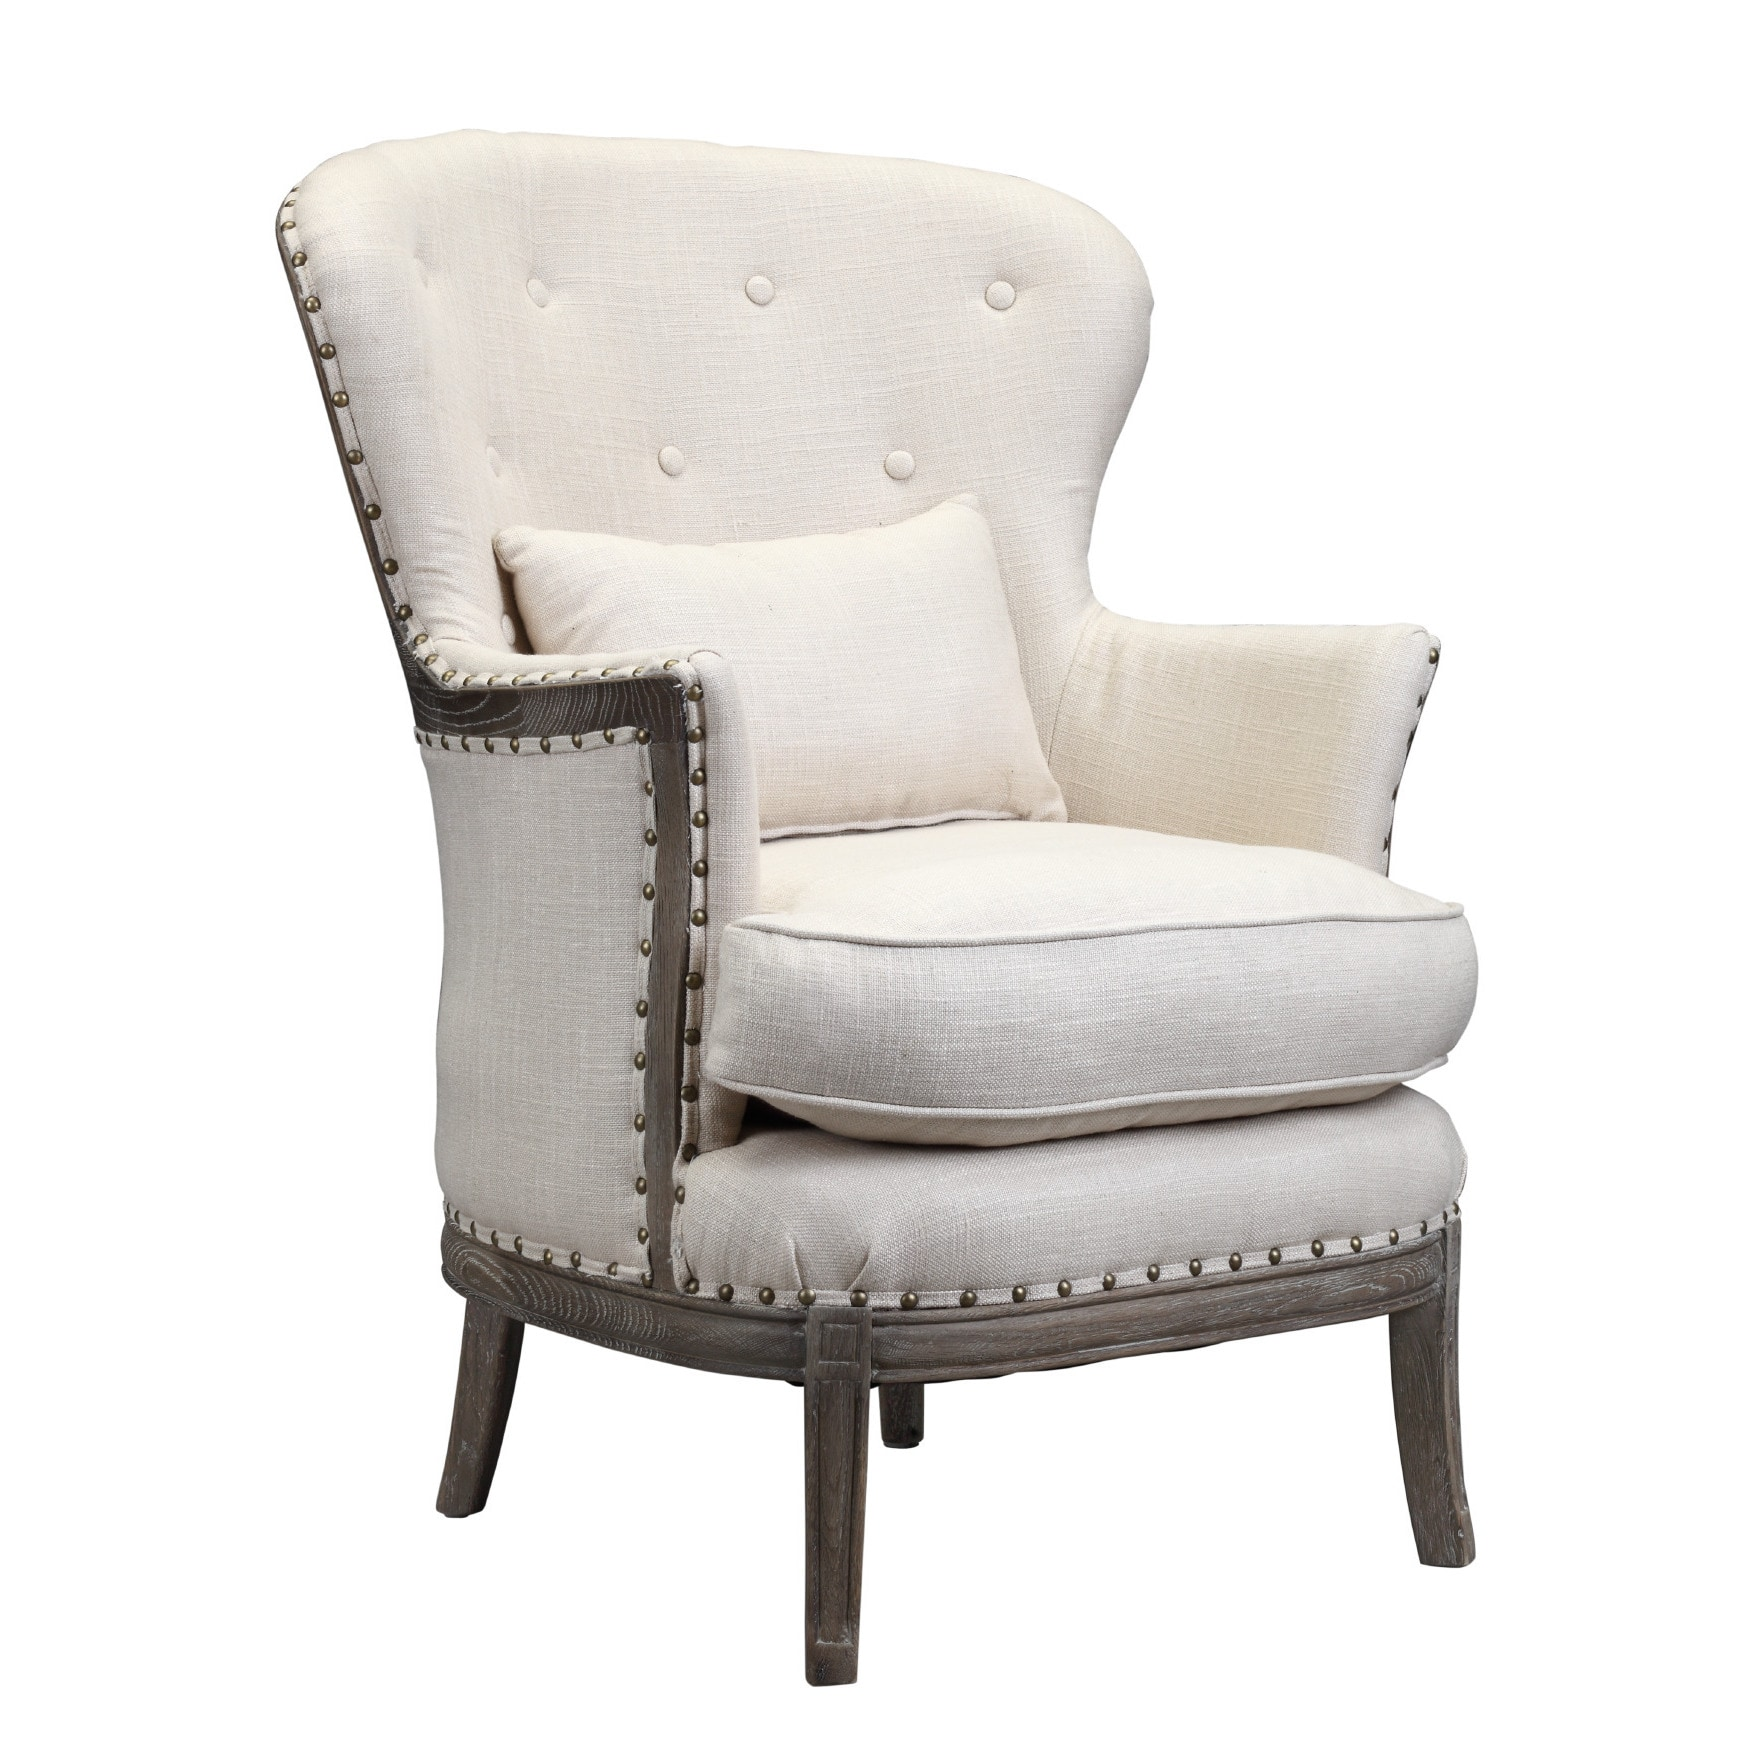 burnham home designs shay collection brown wood and white linen upholstered armchair